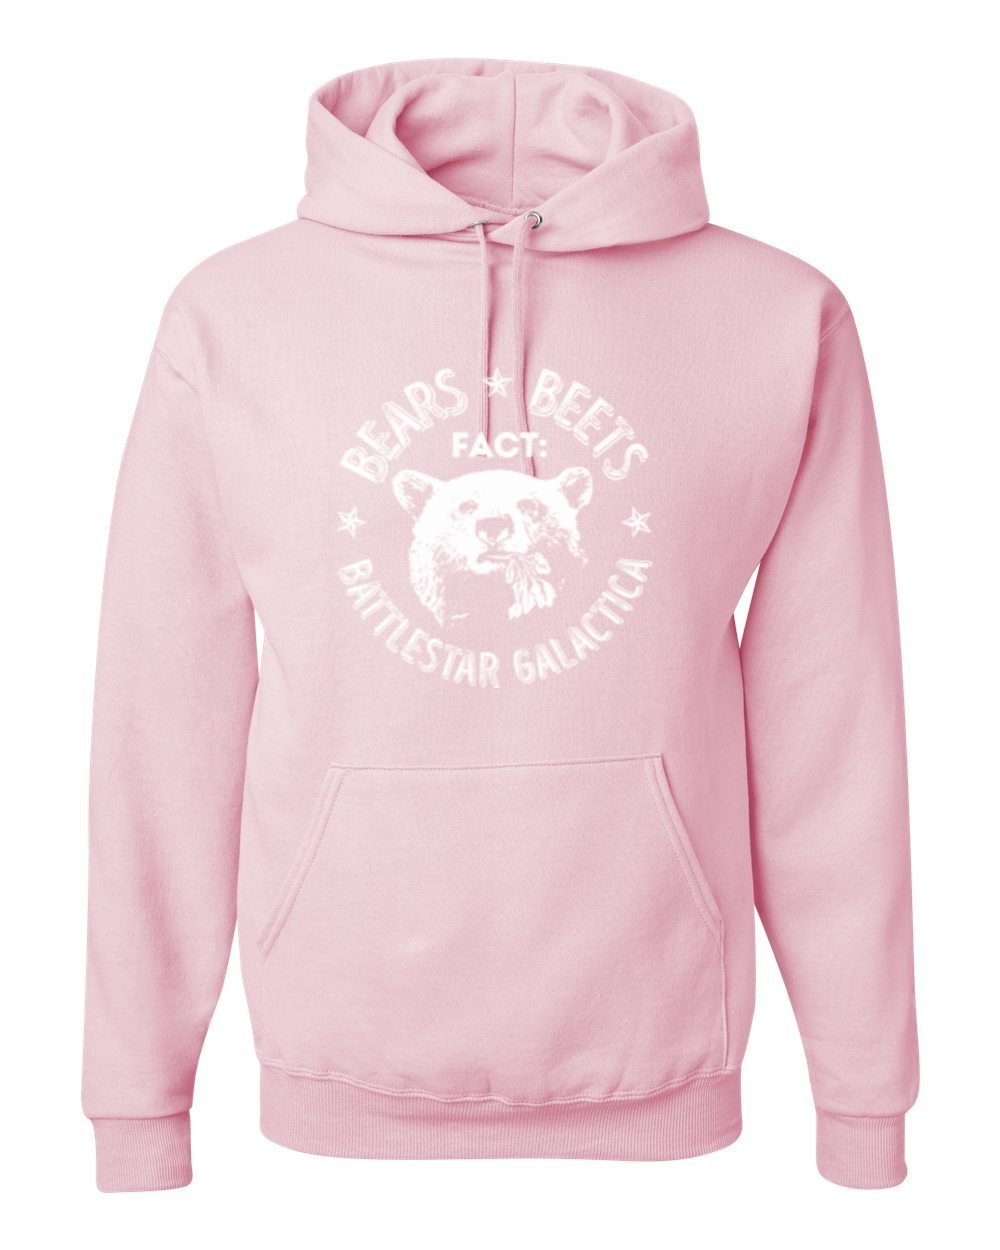 Office Fact Bears Beets Battlestar Quote S Pop Culture Hooded Graphic 43 Shirts